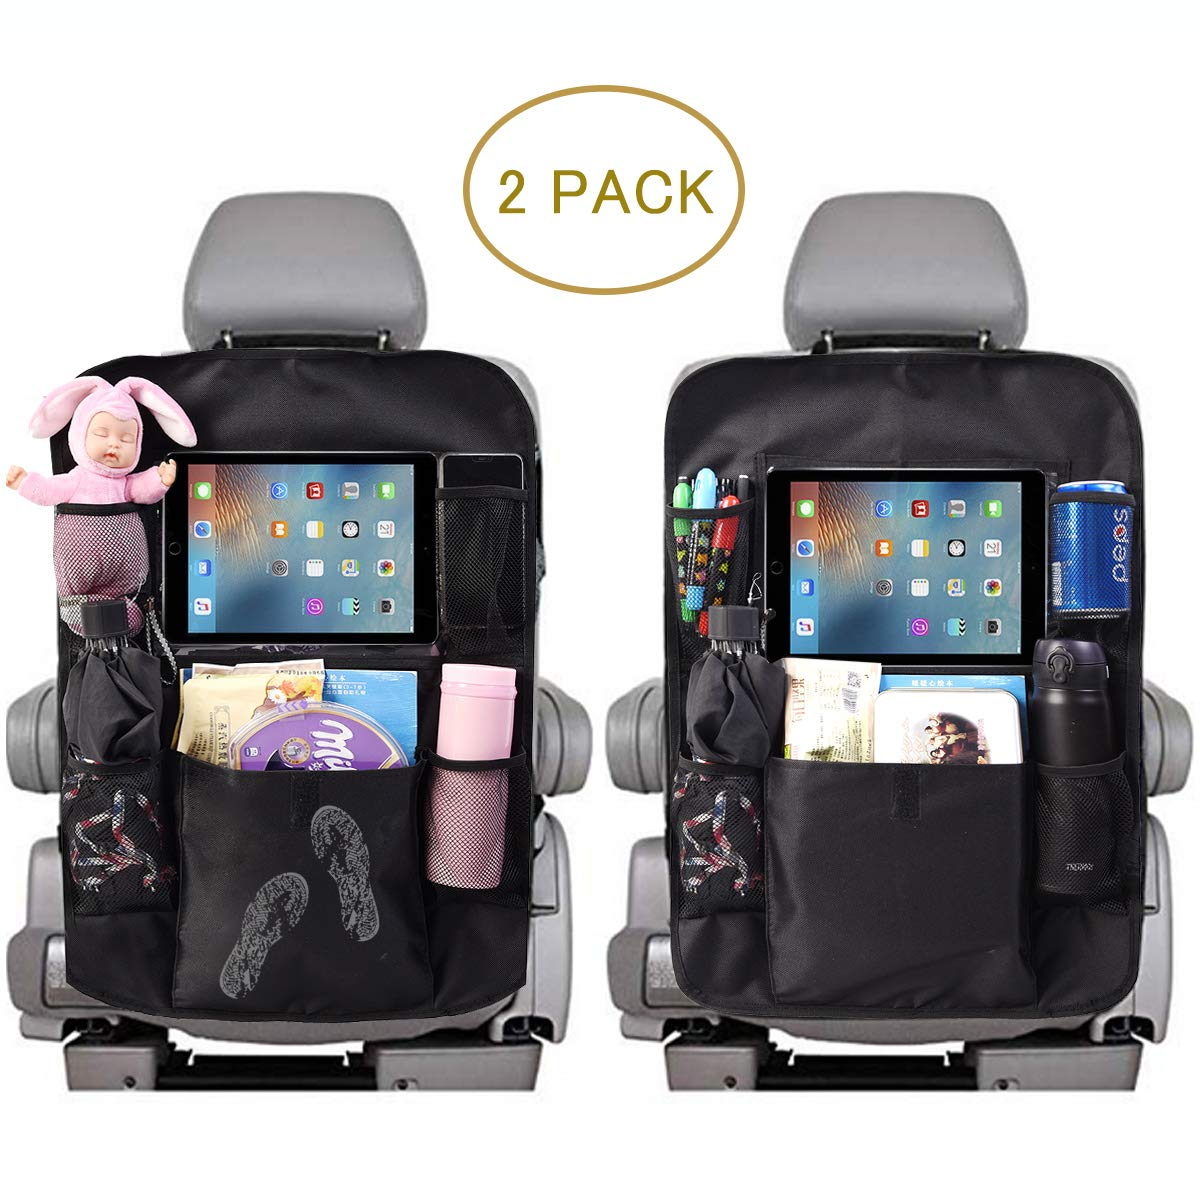 ComboCube Car Backseat Organizer For Kids Kick Mats 2 Pack,Car Seat Back Protectors with Touch-Screen Clear 10'' Tablet Holder + 5 Storage Pockets Back seat Organizer for Kids and Toddlers Toy,Bottle D by ComboCube